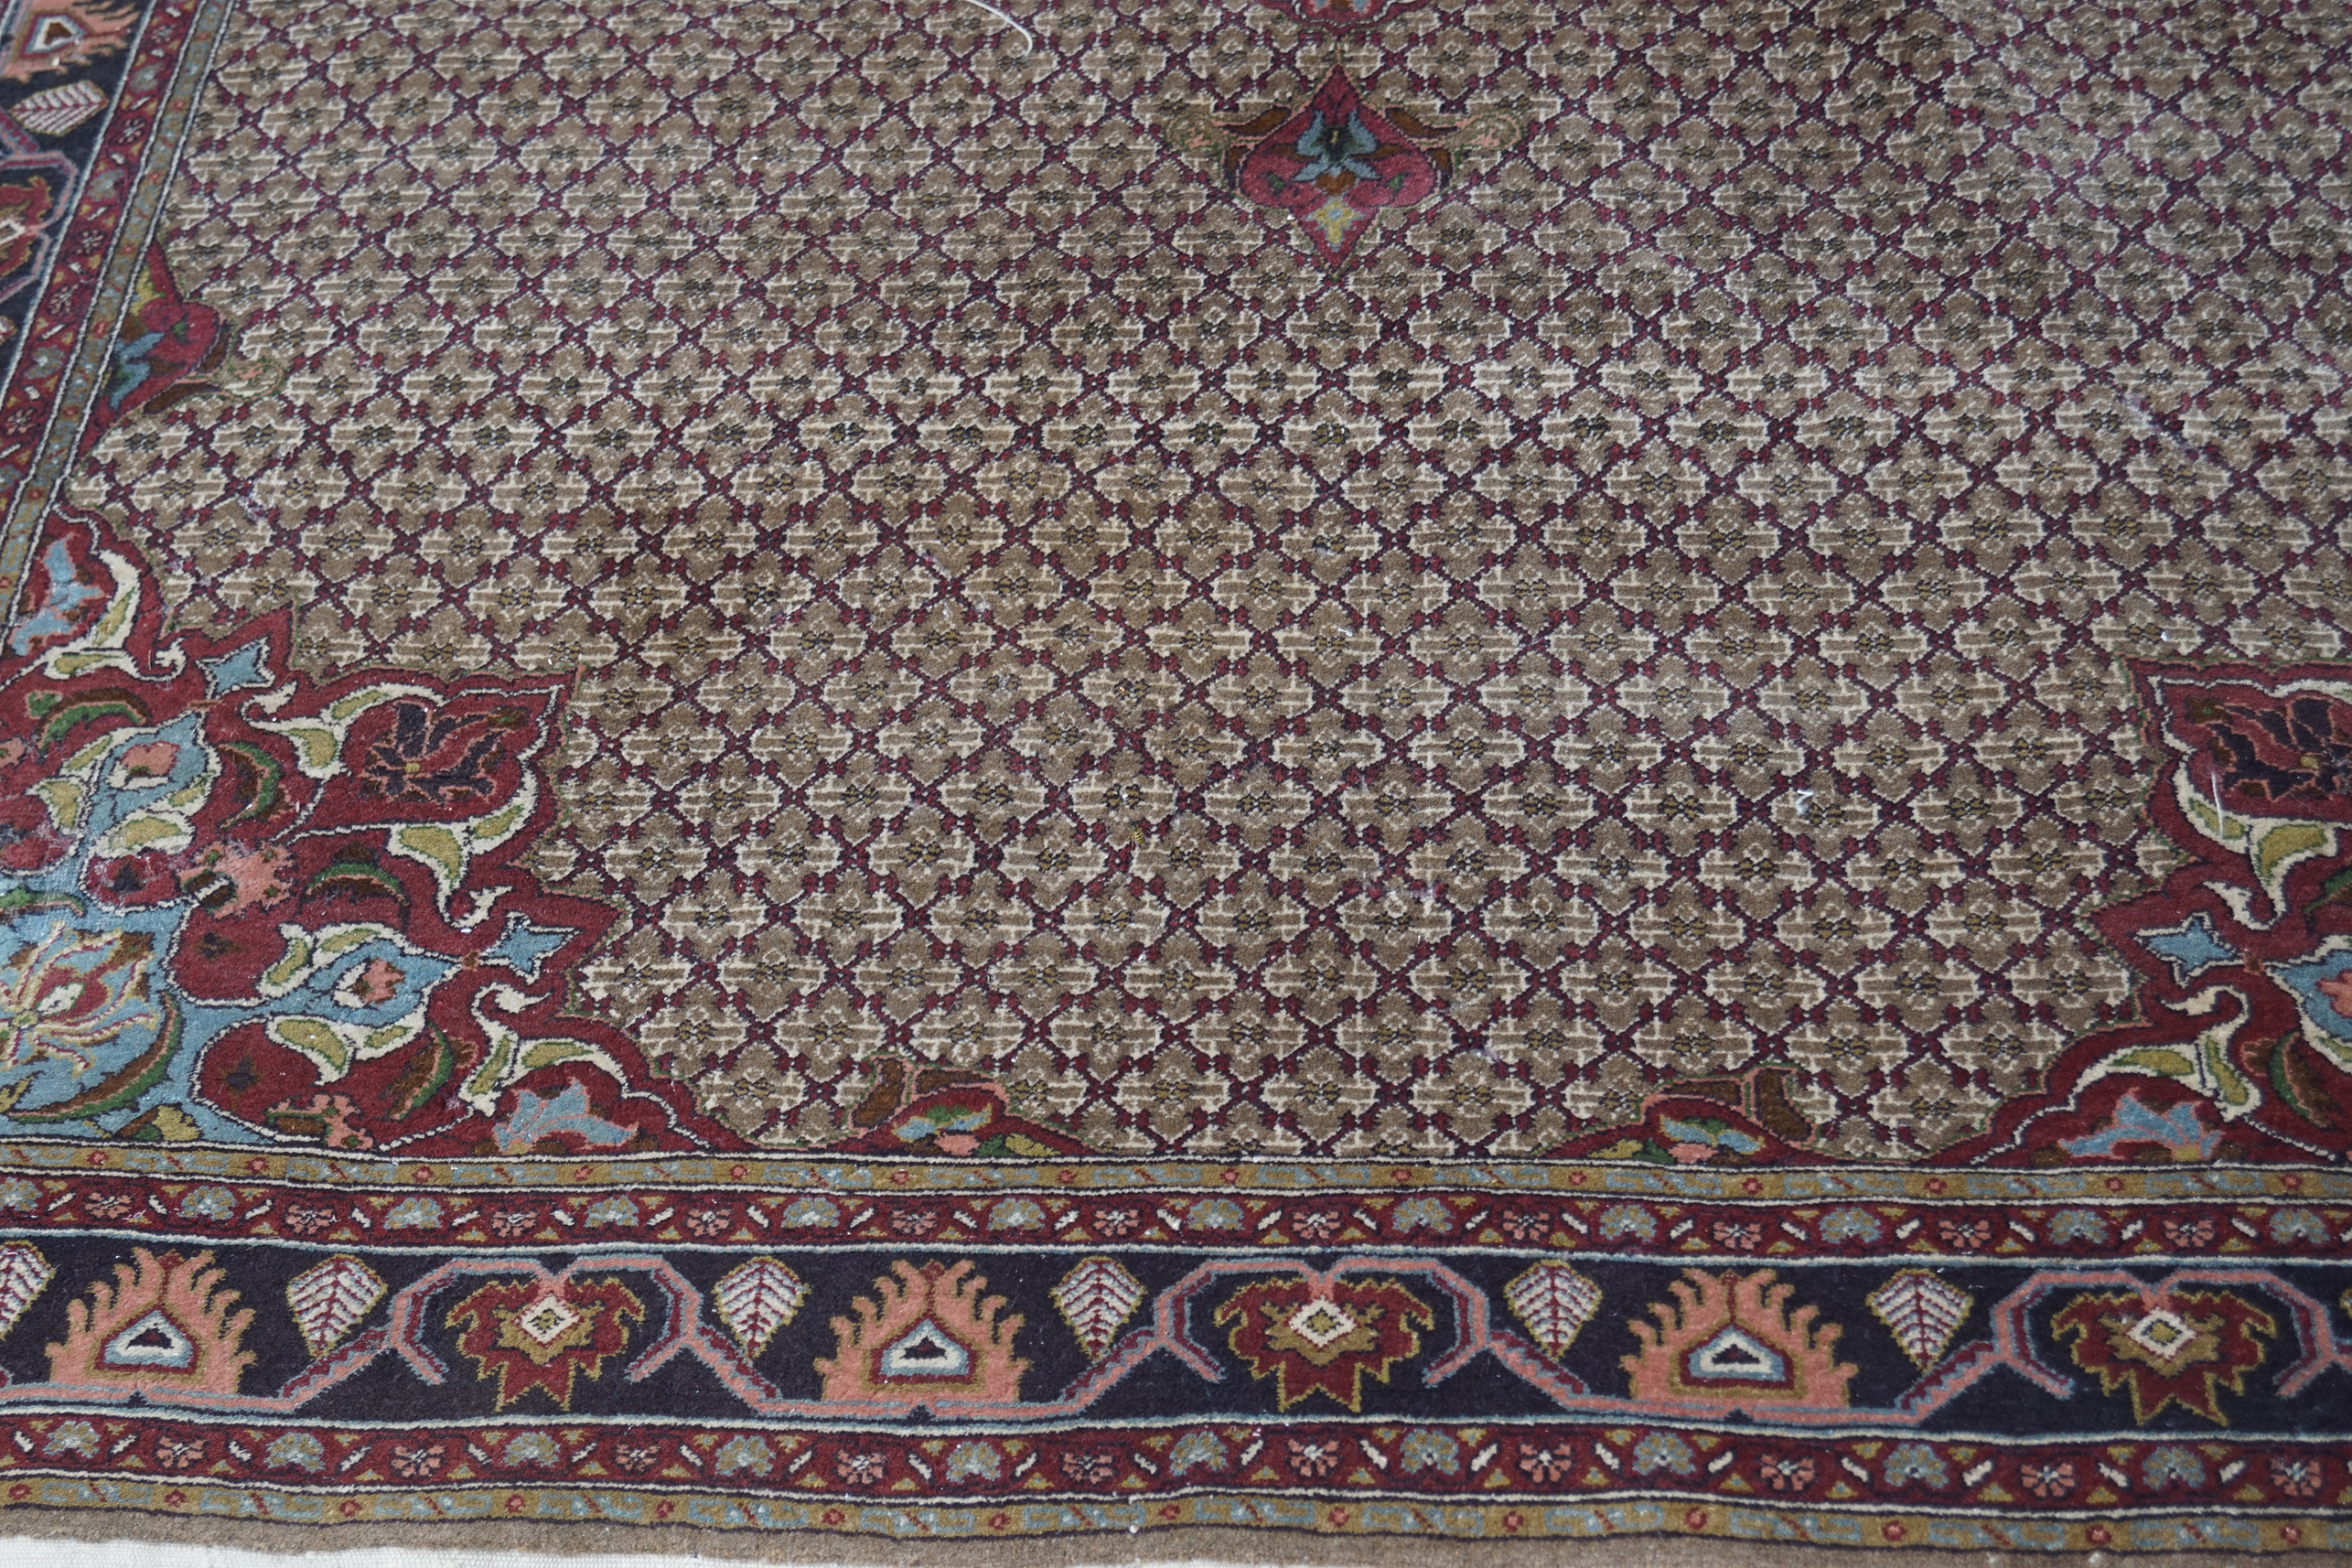 EARLY 20TH-CENTURY PERSIAN CARPET - Image 2 of 4